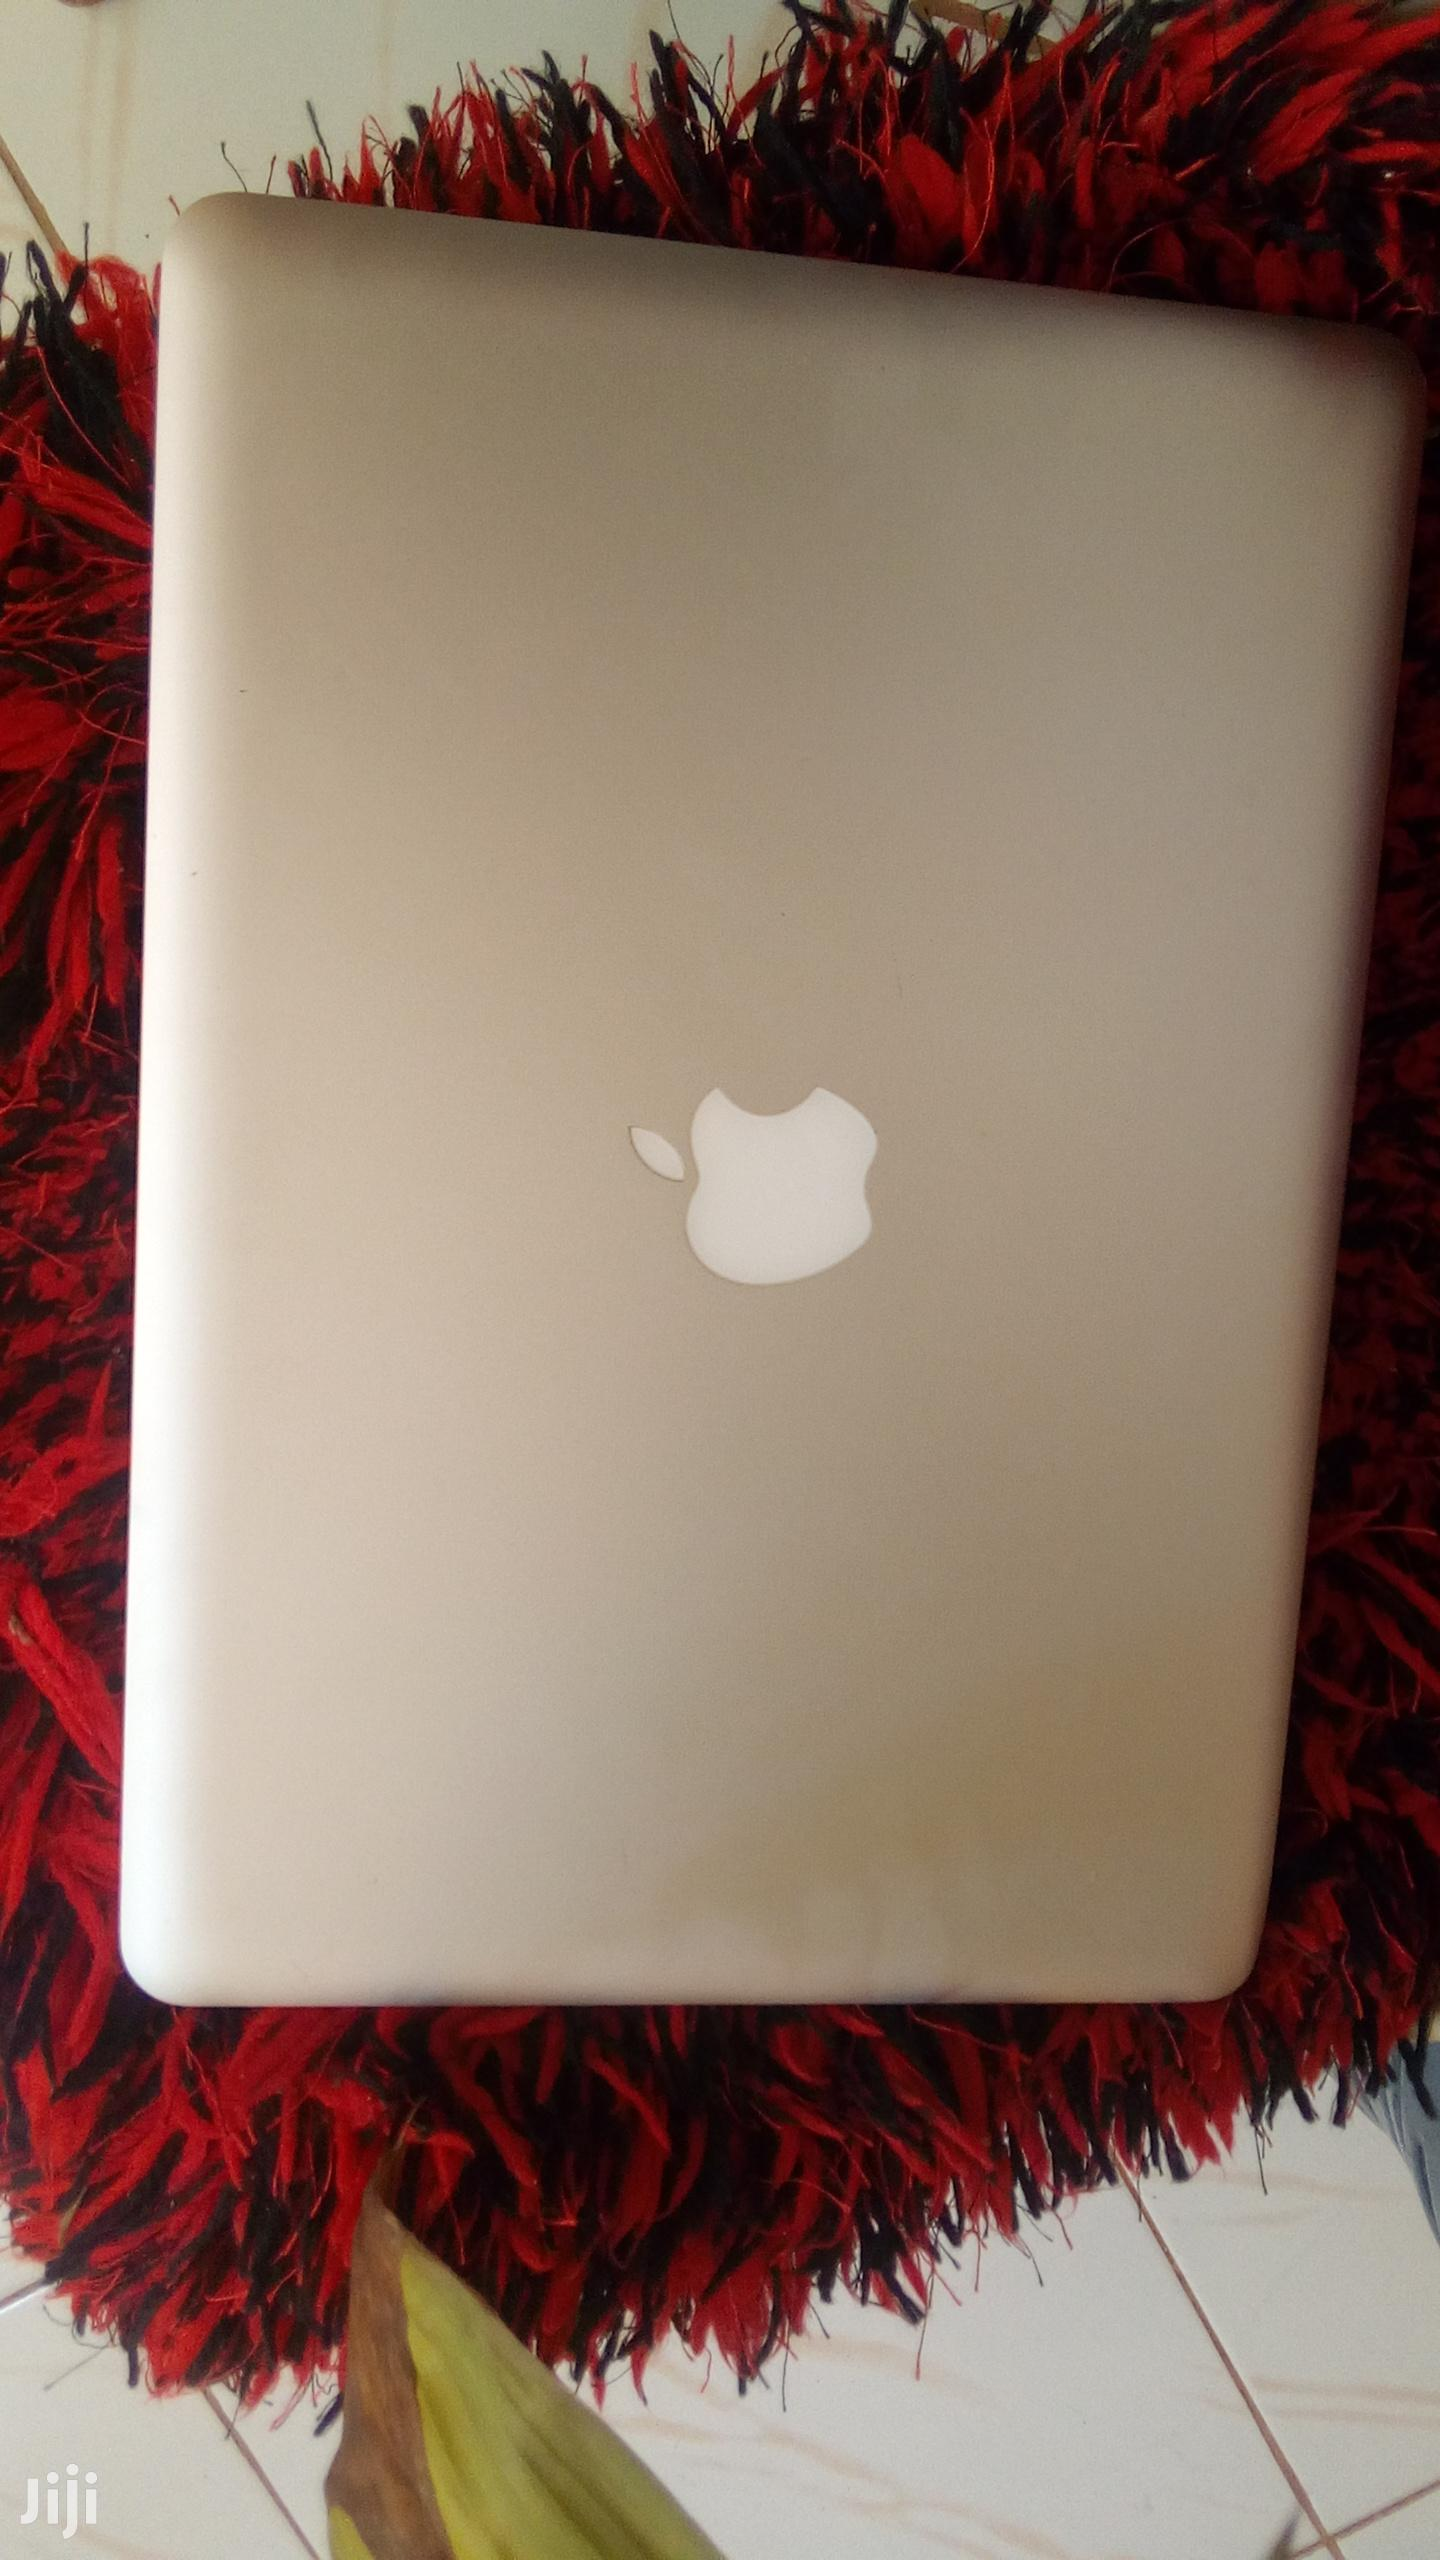 Laptop Apple MacBook Pro 4GB Intel Core I5 HDD 500GB | Laptops & Computers for sale in Wakiso, Central Region, Uganda